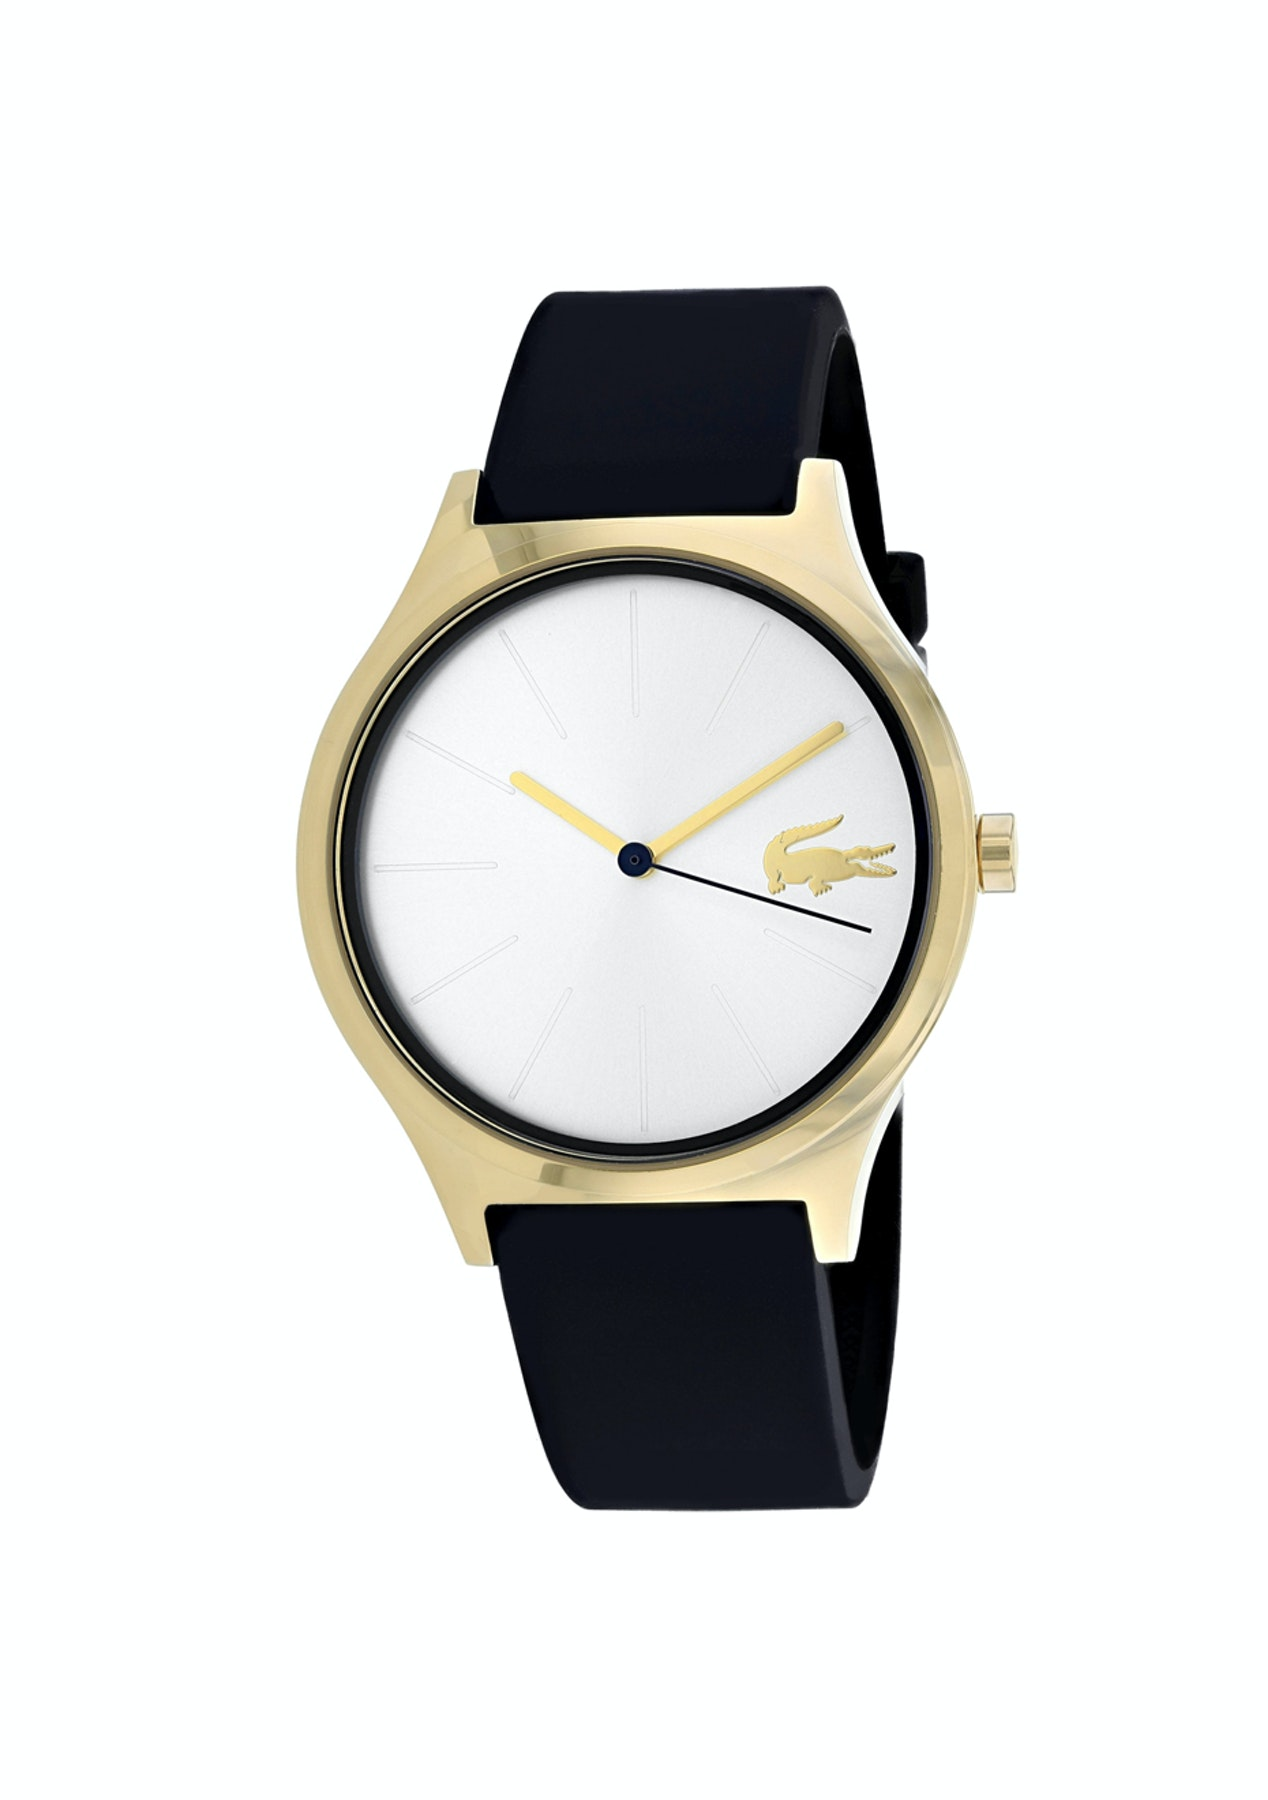 Lacoste Valencia - Big Brand Watch Price Drop - Onceit 4a333a9b88